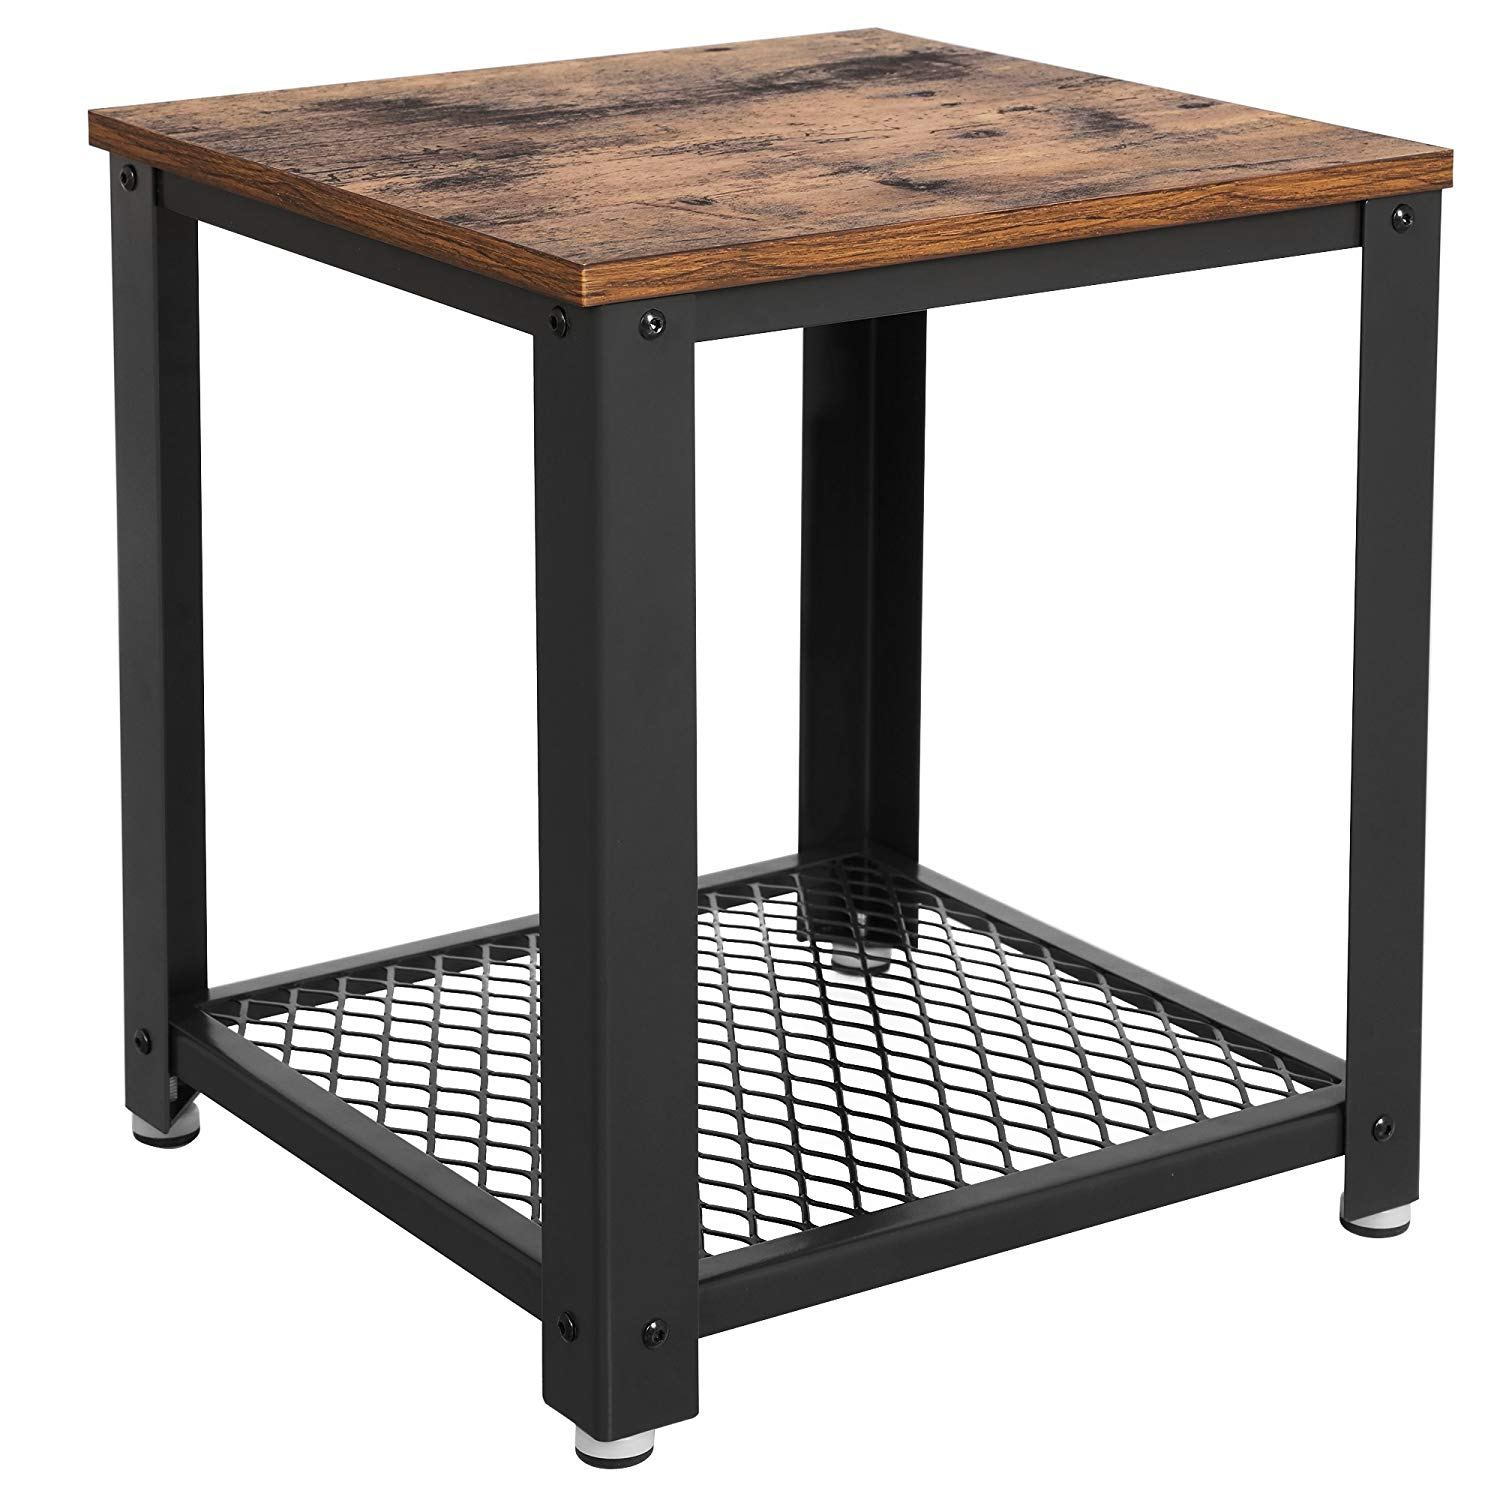 songmics vintage end table tier side with storage shelf for wood accent mirrored bedroom furniture battery operated lamps small metal legs clermont round kitchen powered patio